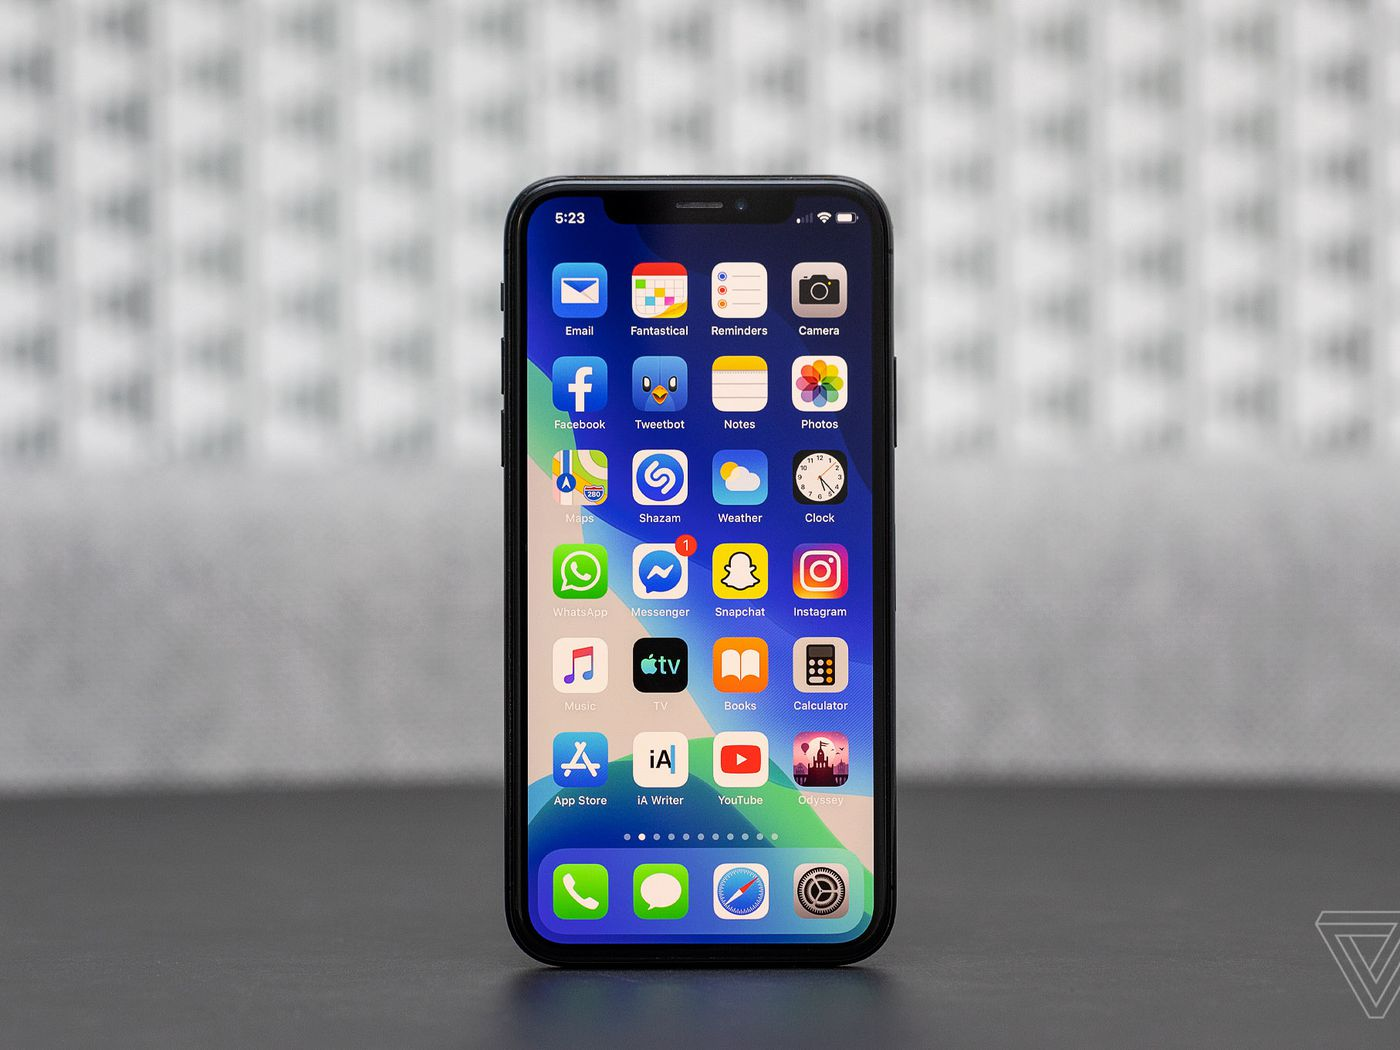 iOS 13 is killing background apps more frequently, iPhone